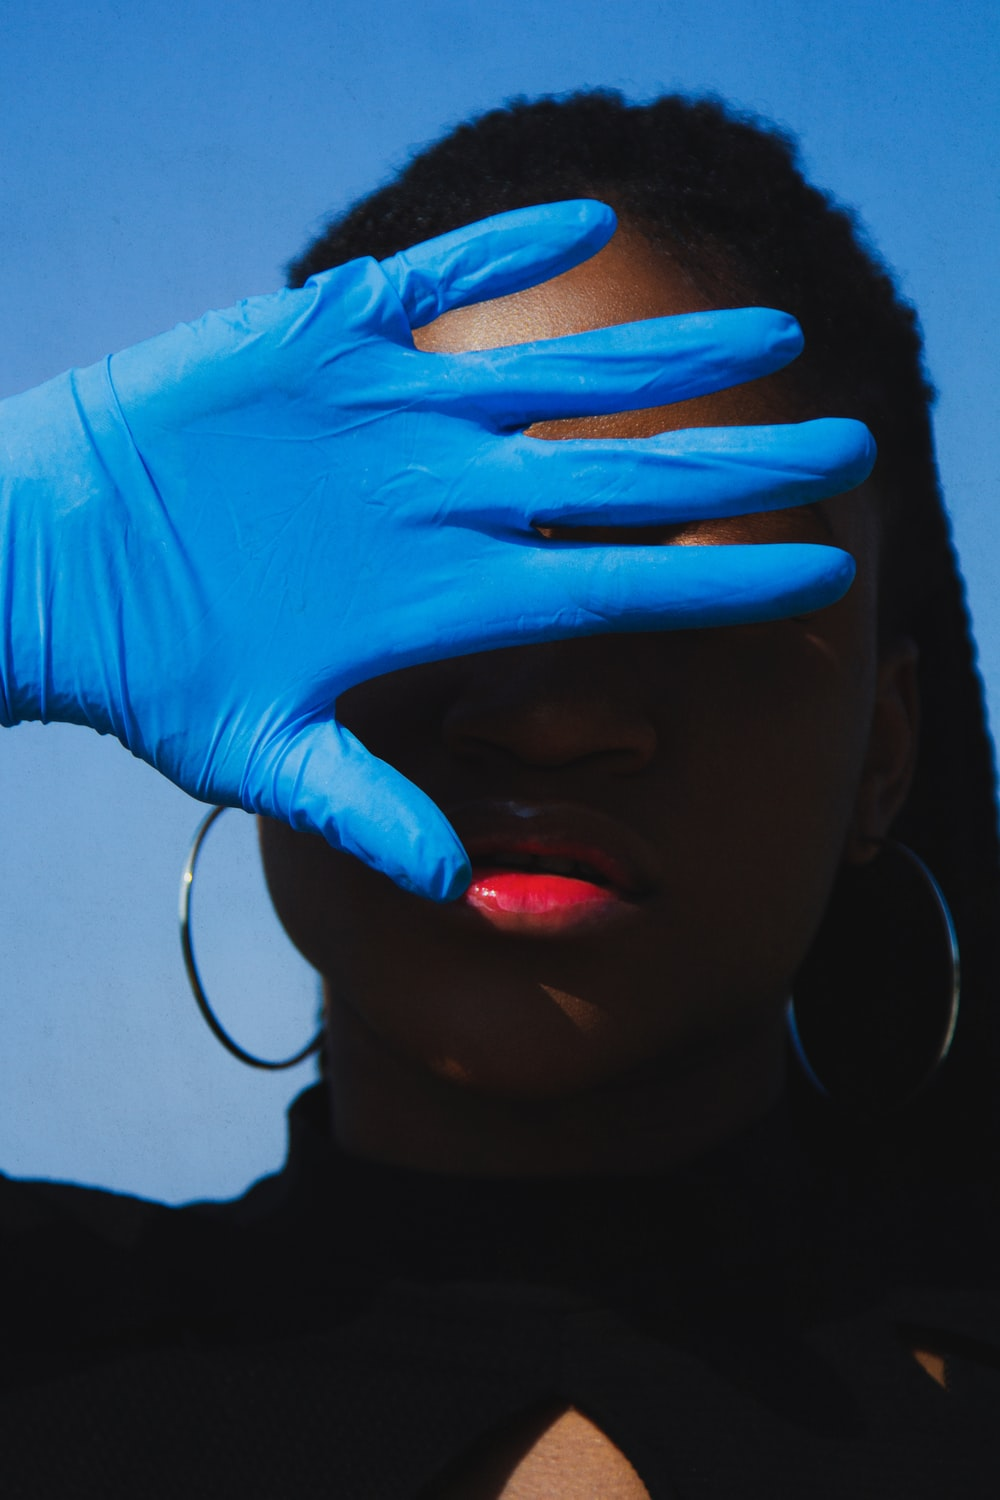 Woman partially hiding her face wearing a blue medical latex glove